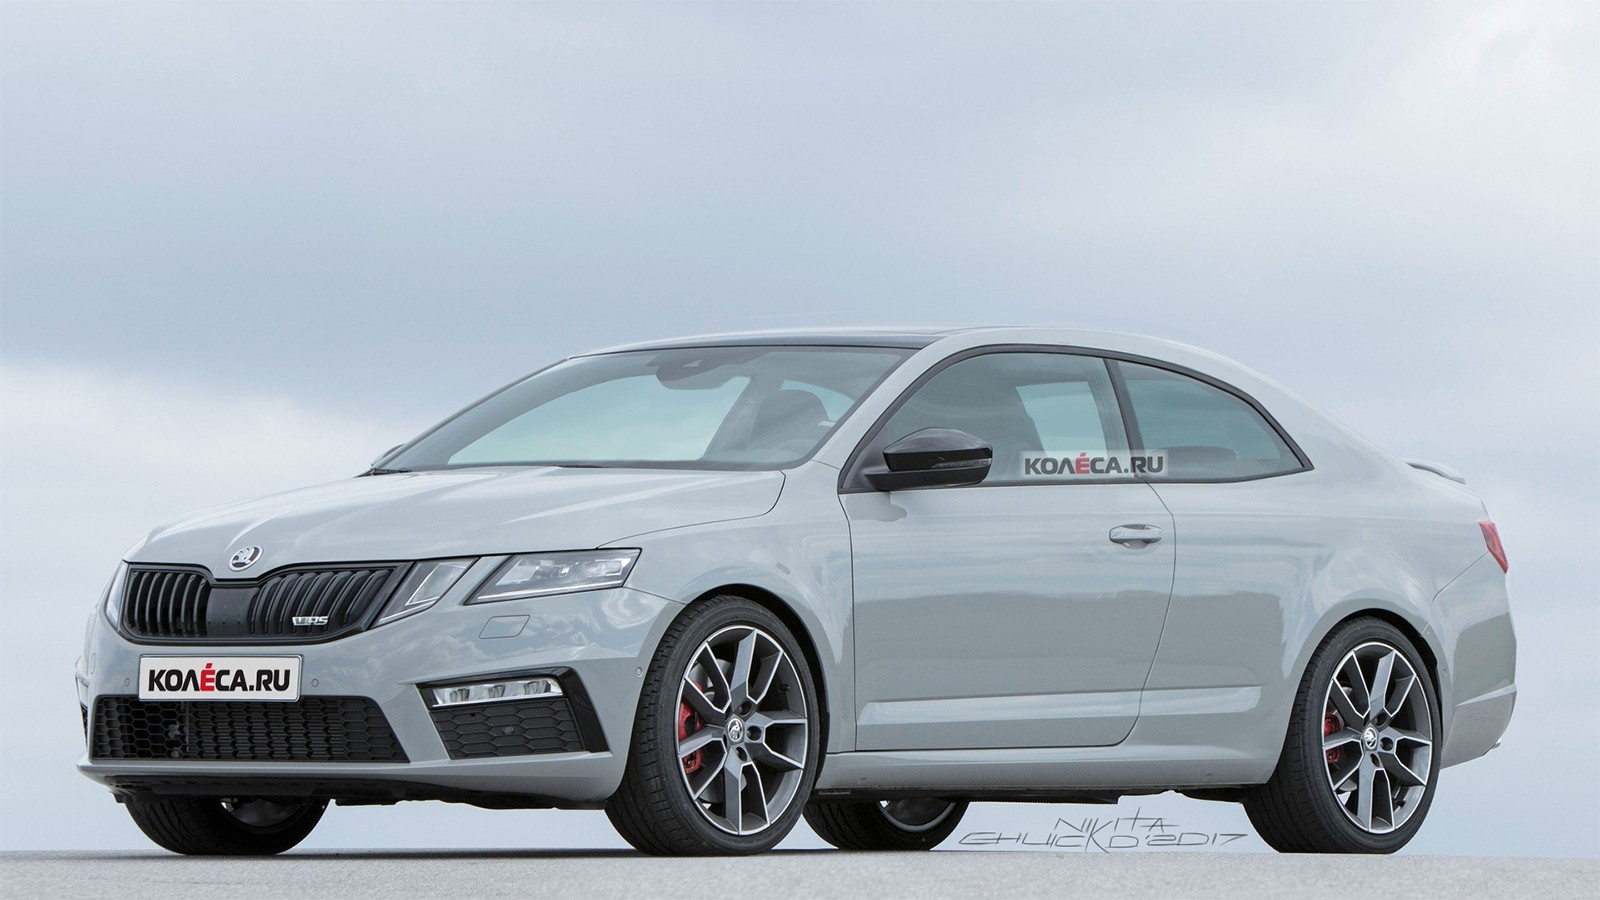 Skoda-octavia-coupe front2